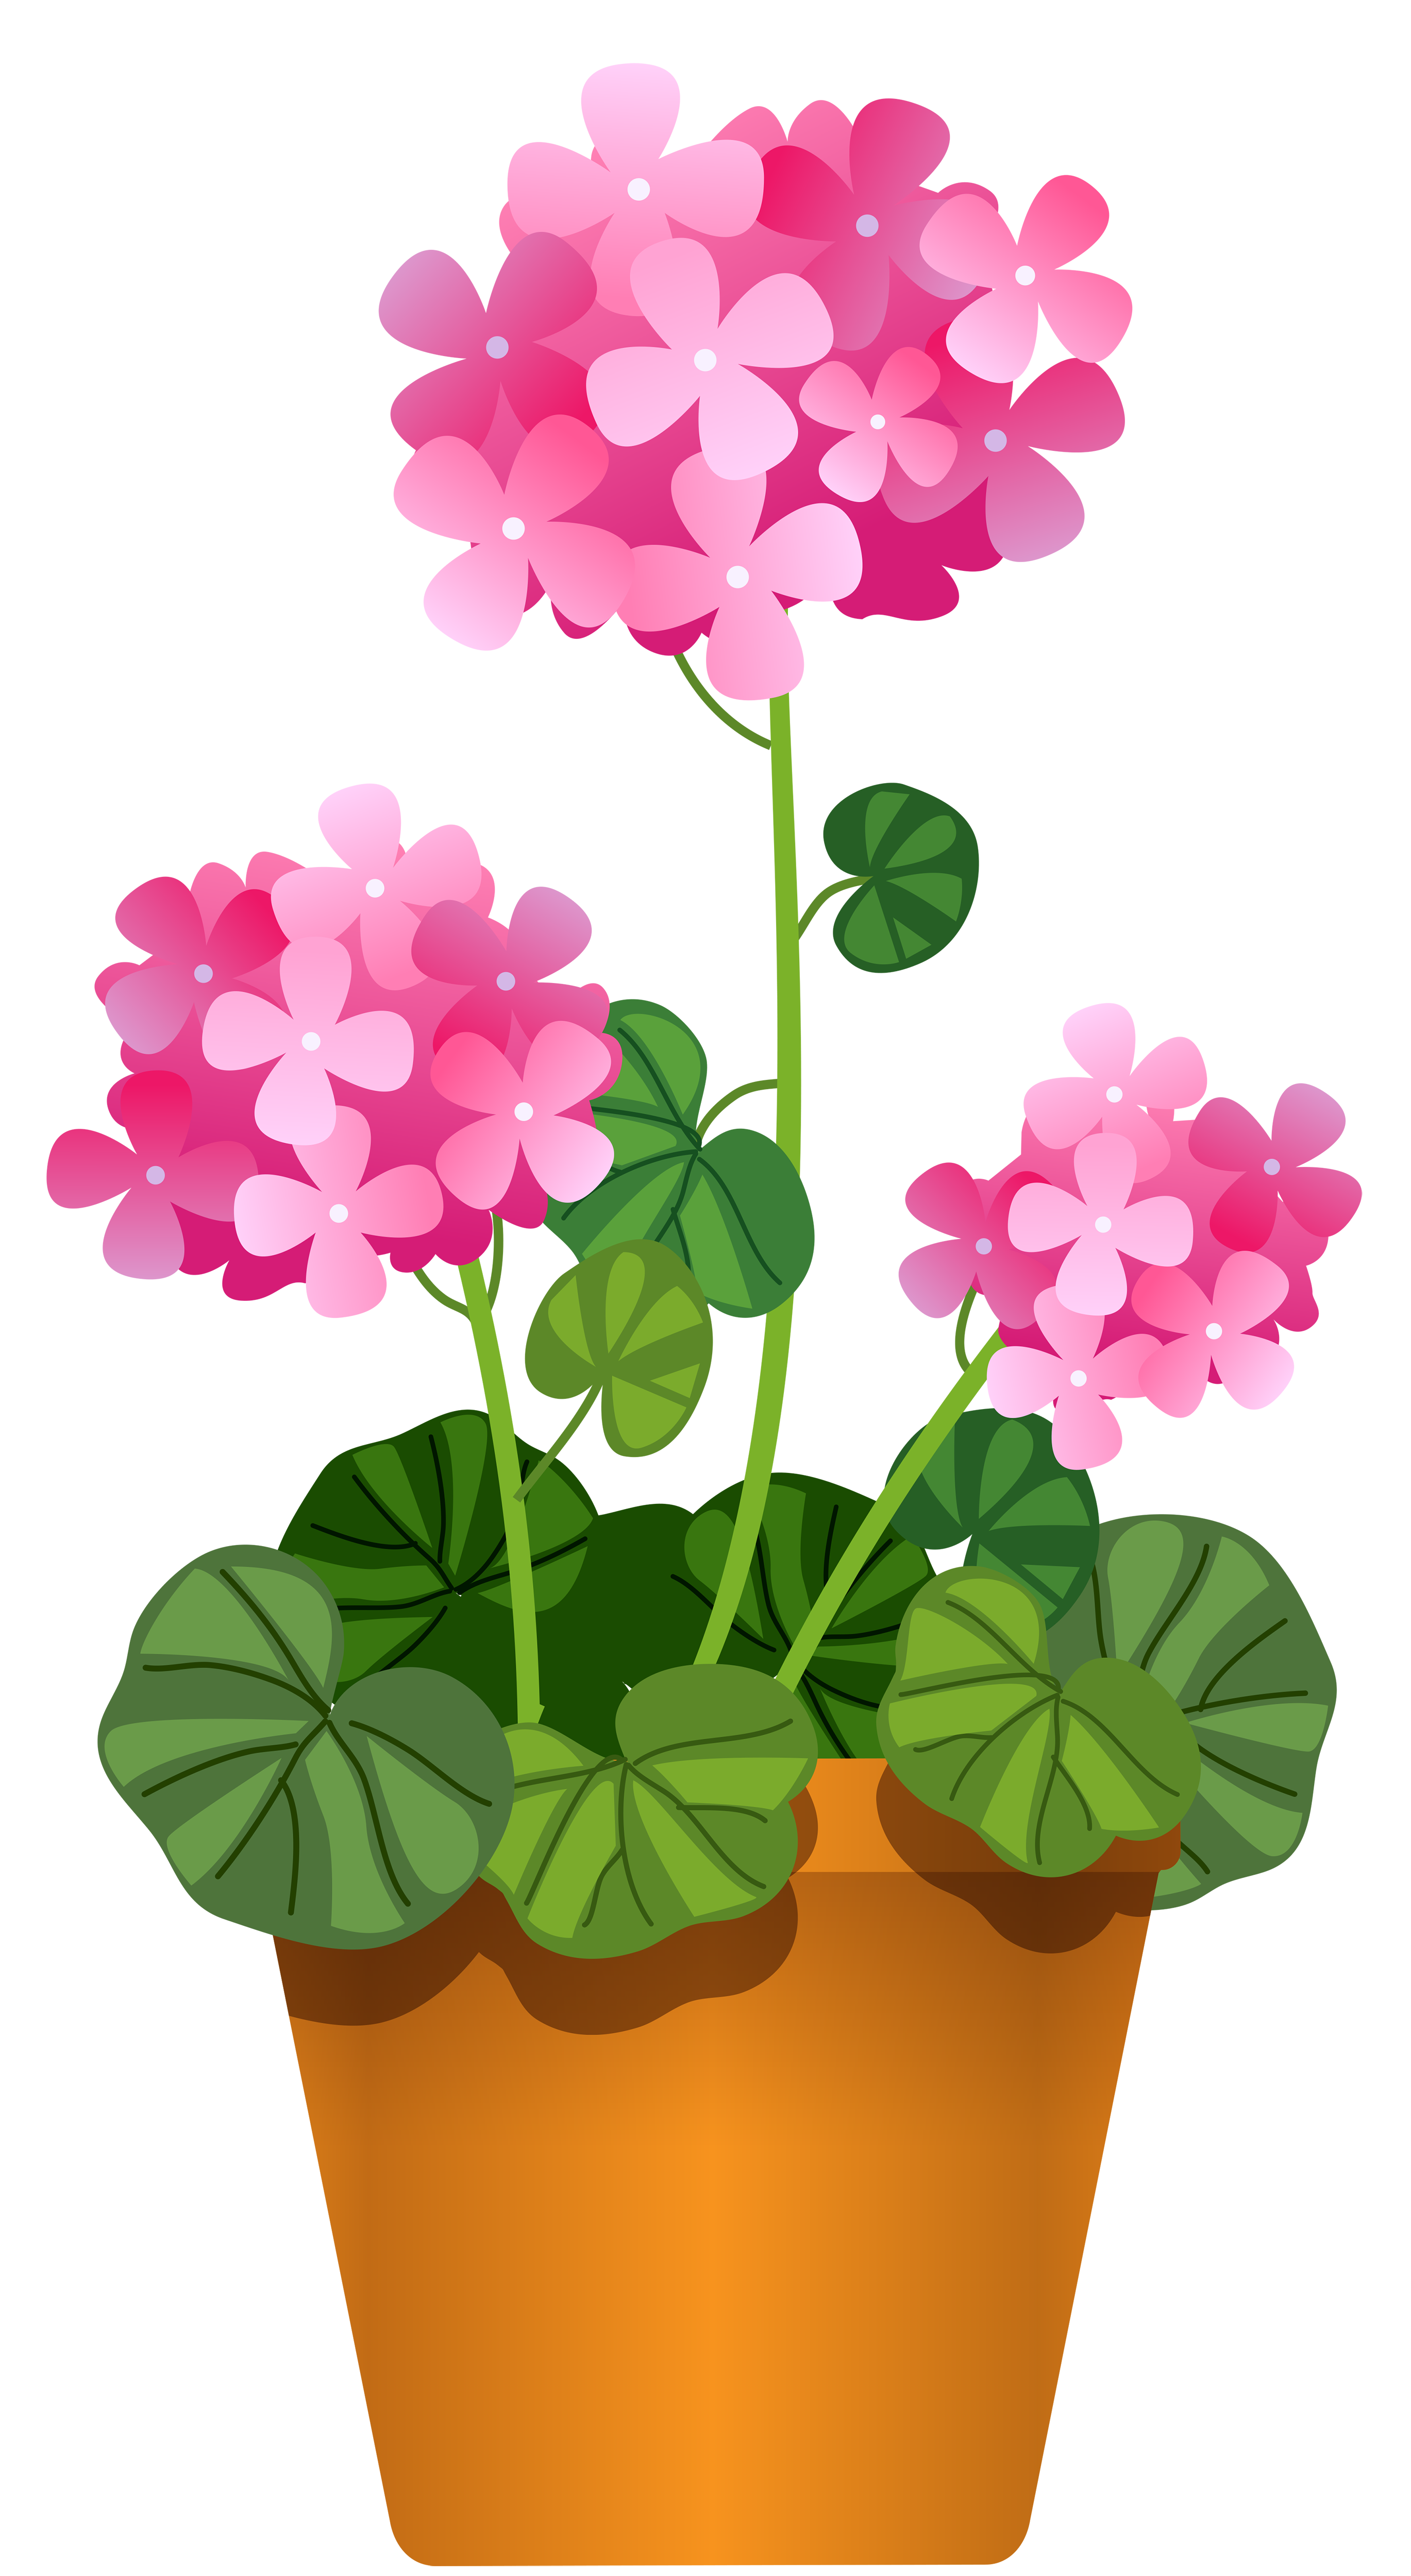 Pin by denia patricia. Growth clipart flower bud